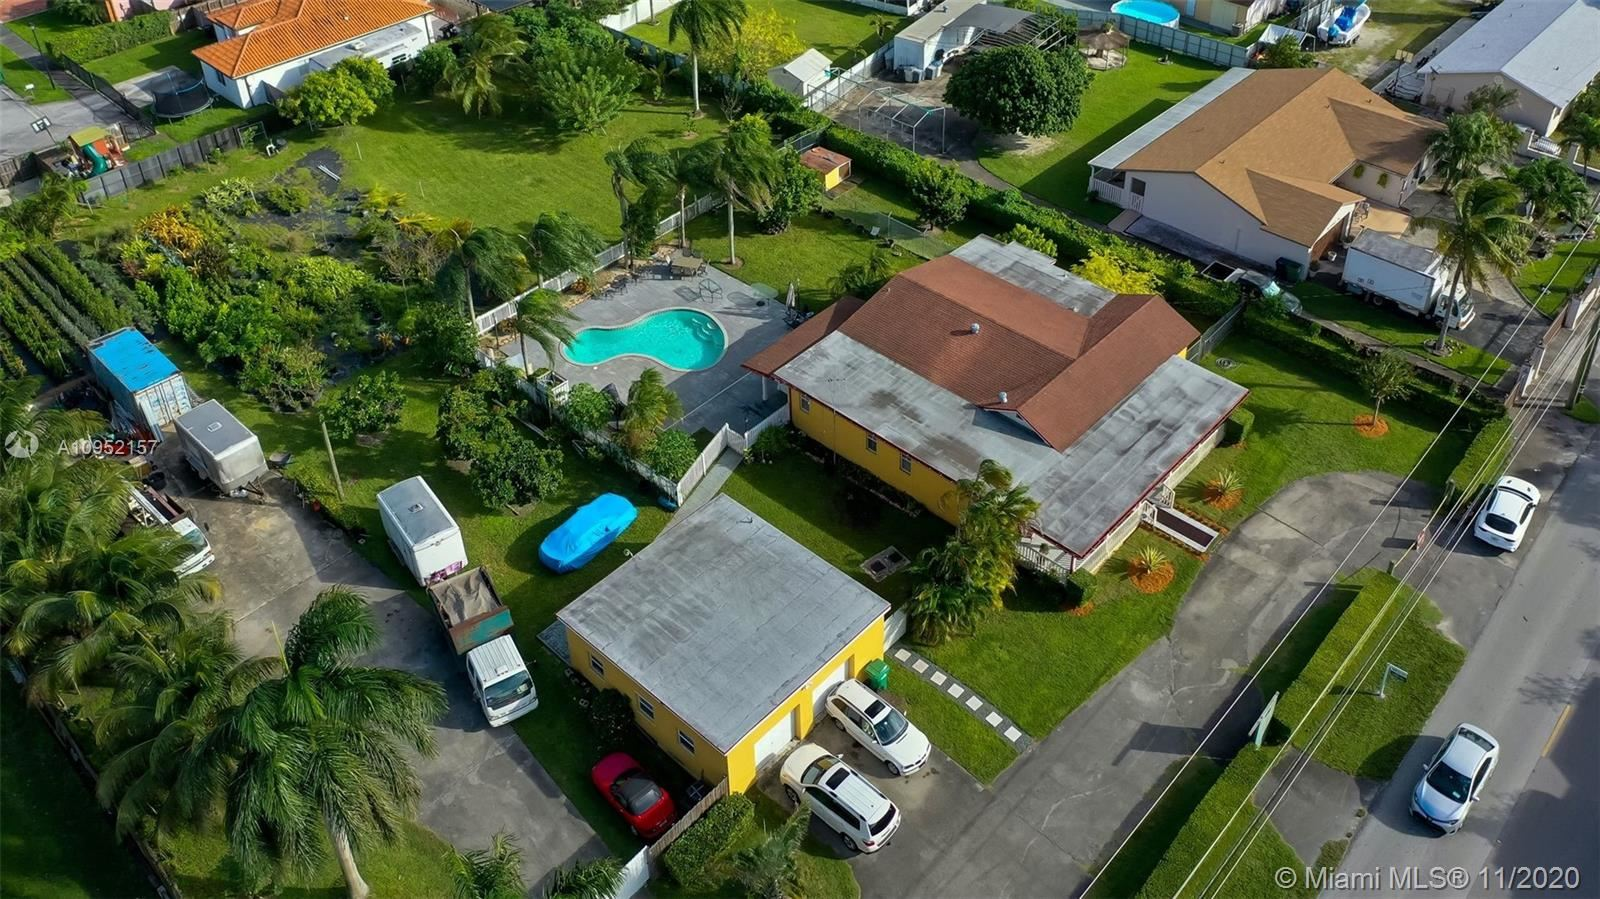 25265 SW 134th Ave, Homestead, FL 33032 - #: A10952157